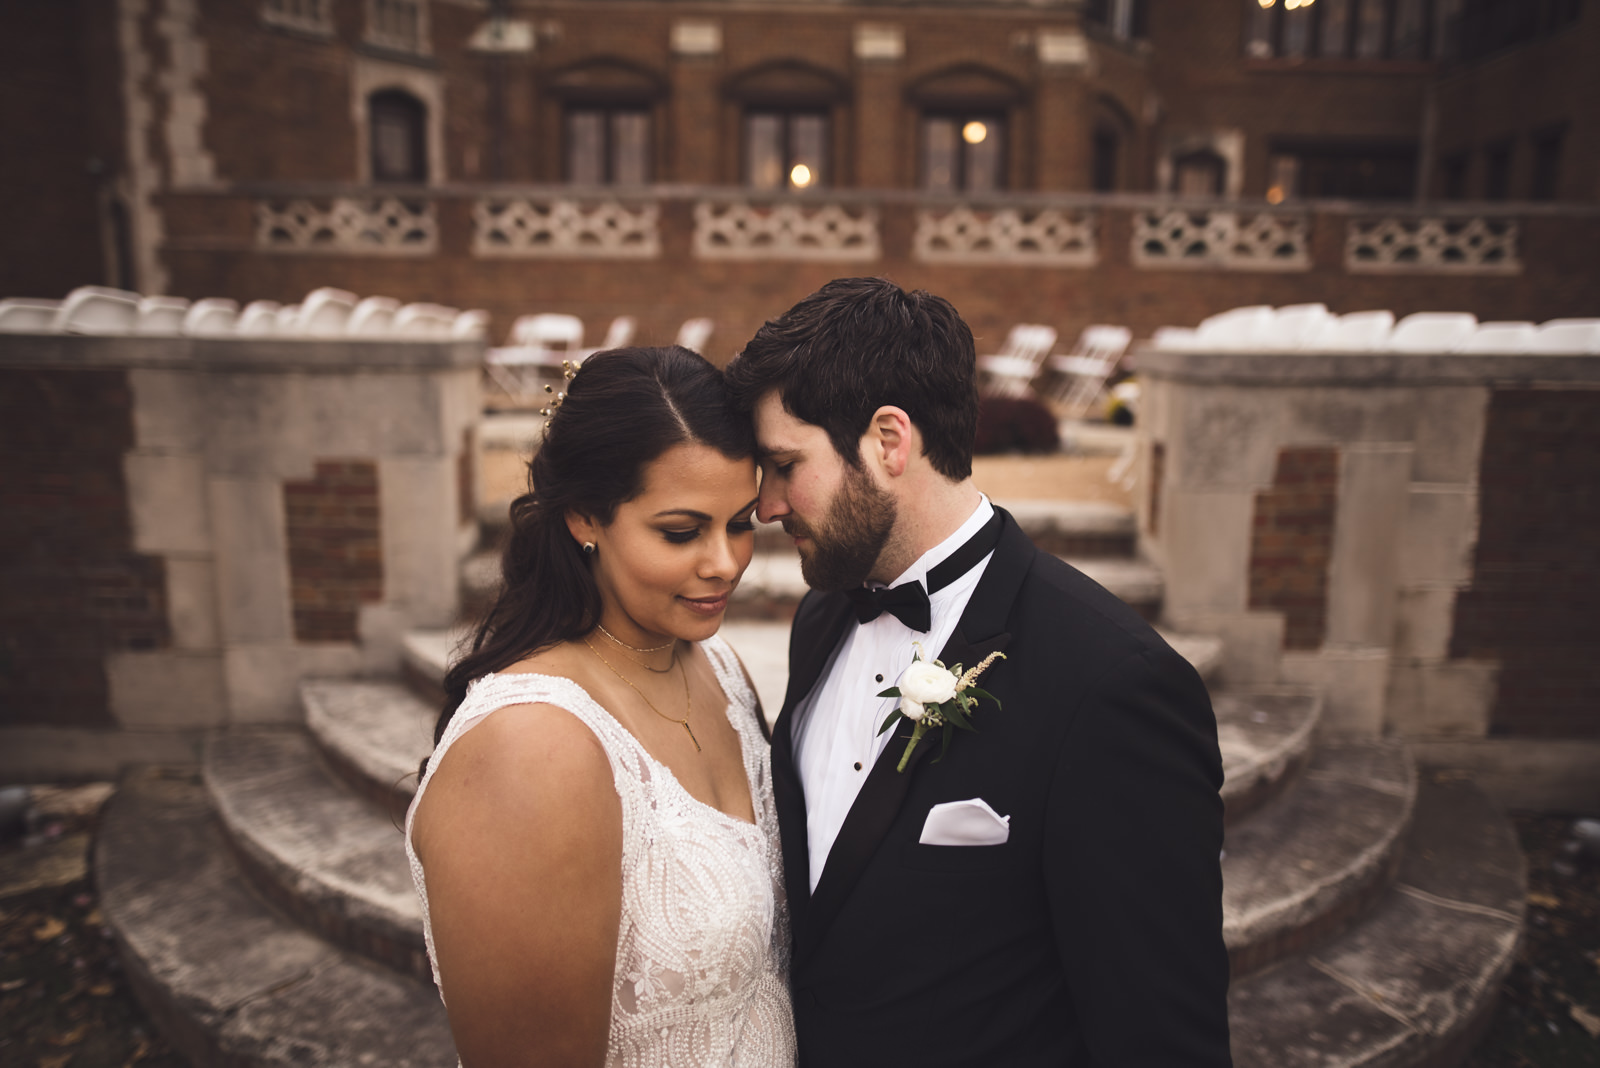 rollins-mansion-3231-wedding-photographer-des-moines-iowa-m-c.jpg